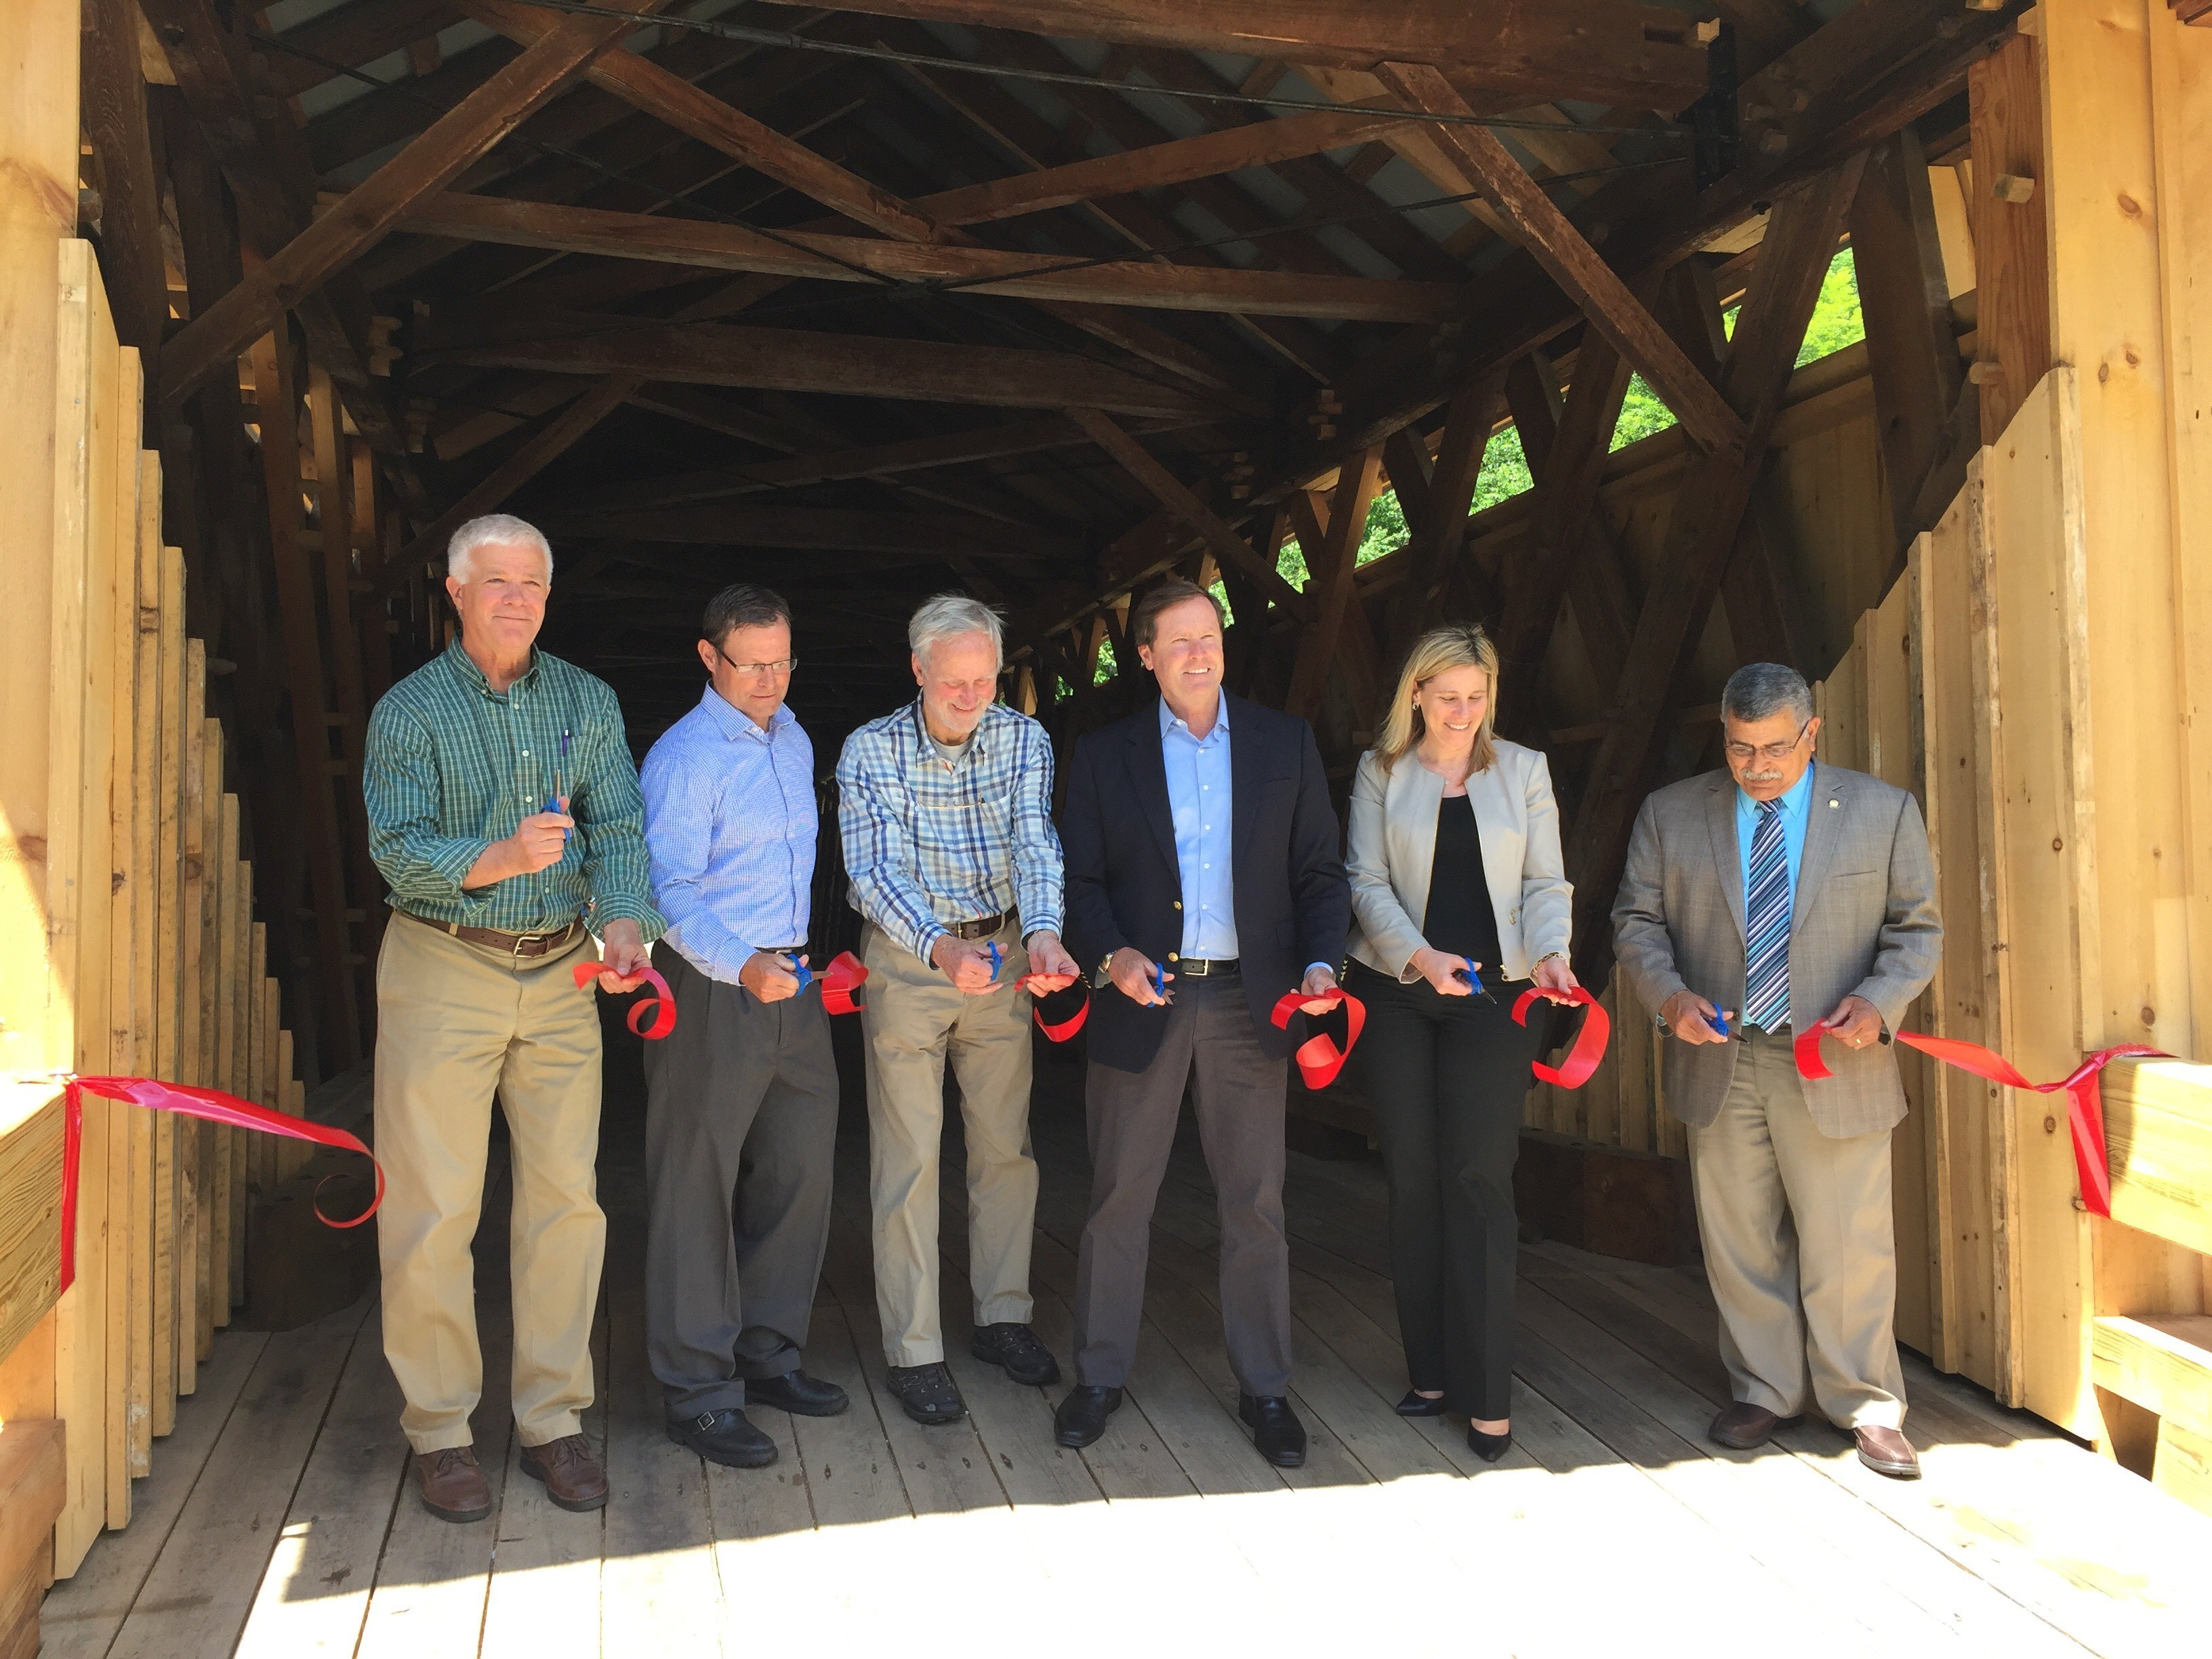 Ribbon Cutting: left to right: Joe Martens, (OSI Senior Fellow); Jack Williams (DOT Regional Director); John Adams, Matt Driscoll (DOT Commissioner); Kelly Turturro (DEC Regional Director) and Luis Alvarez (Chairman, Sullivan County Legislature